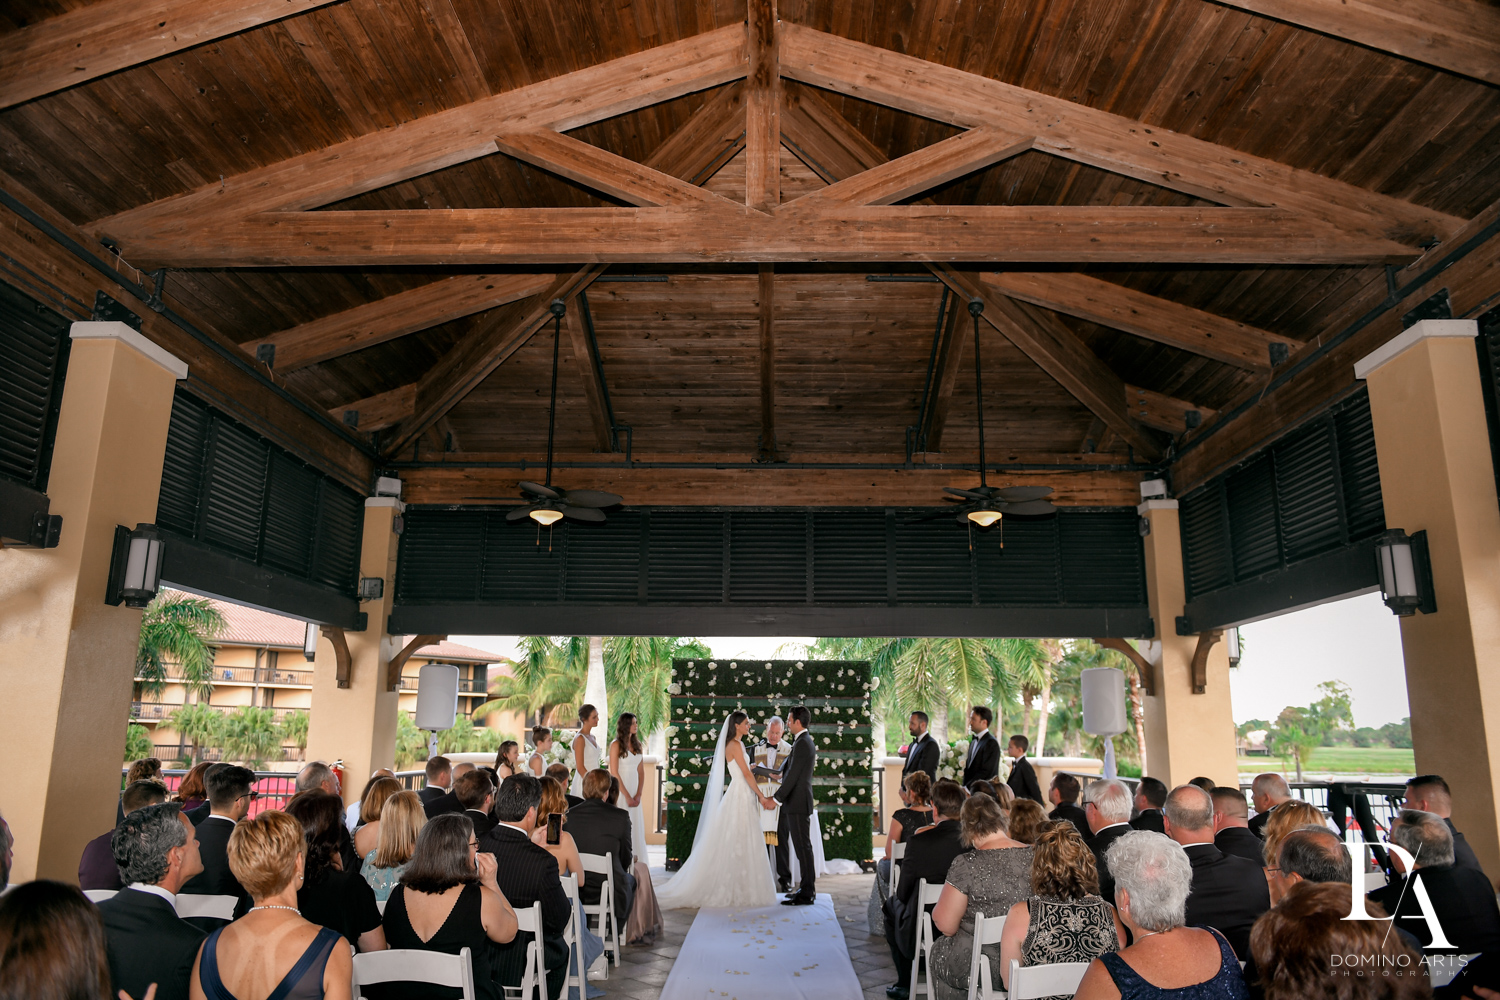 ceremony at Stunning Golf Course Wedding at PGA National Palm Beach by Domino Arts Photography